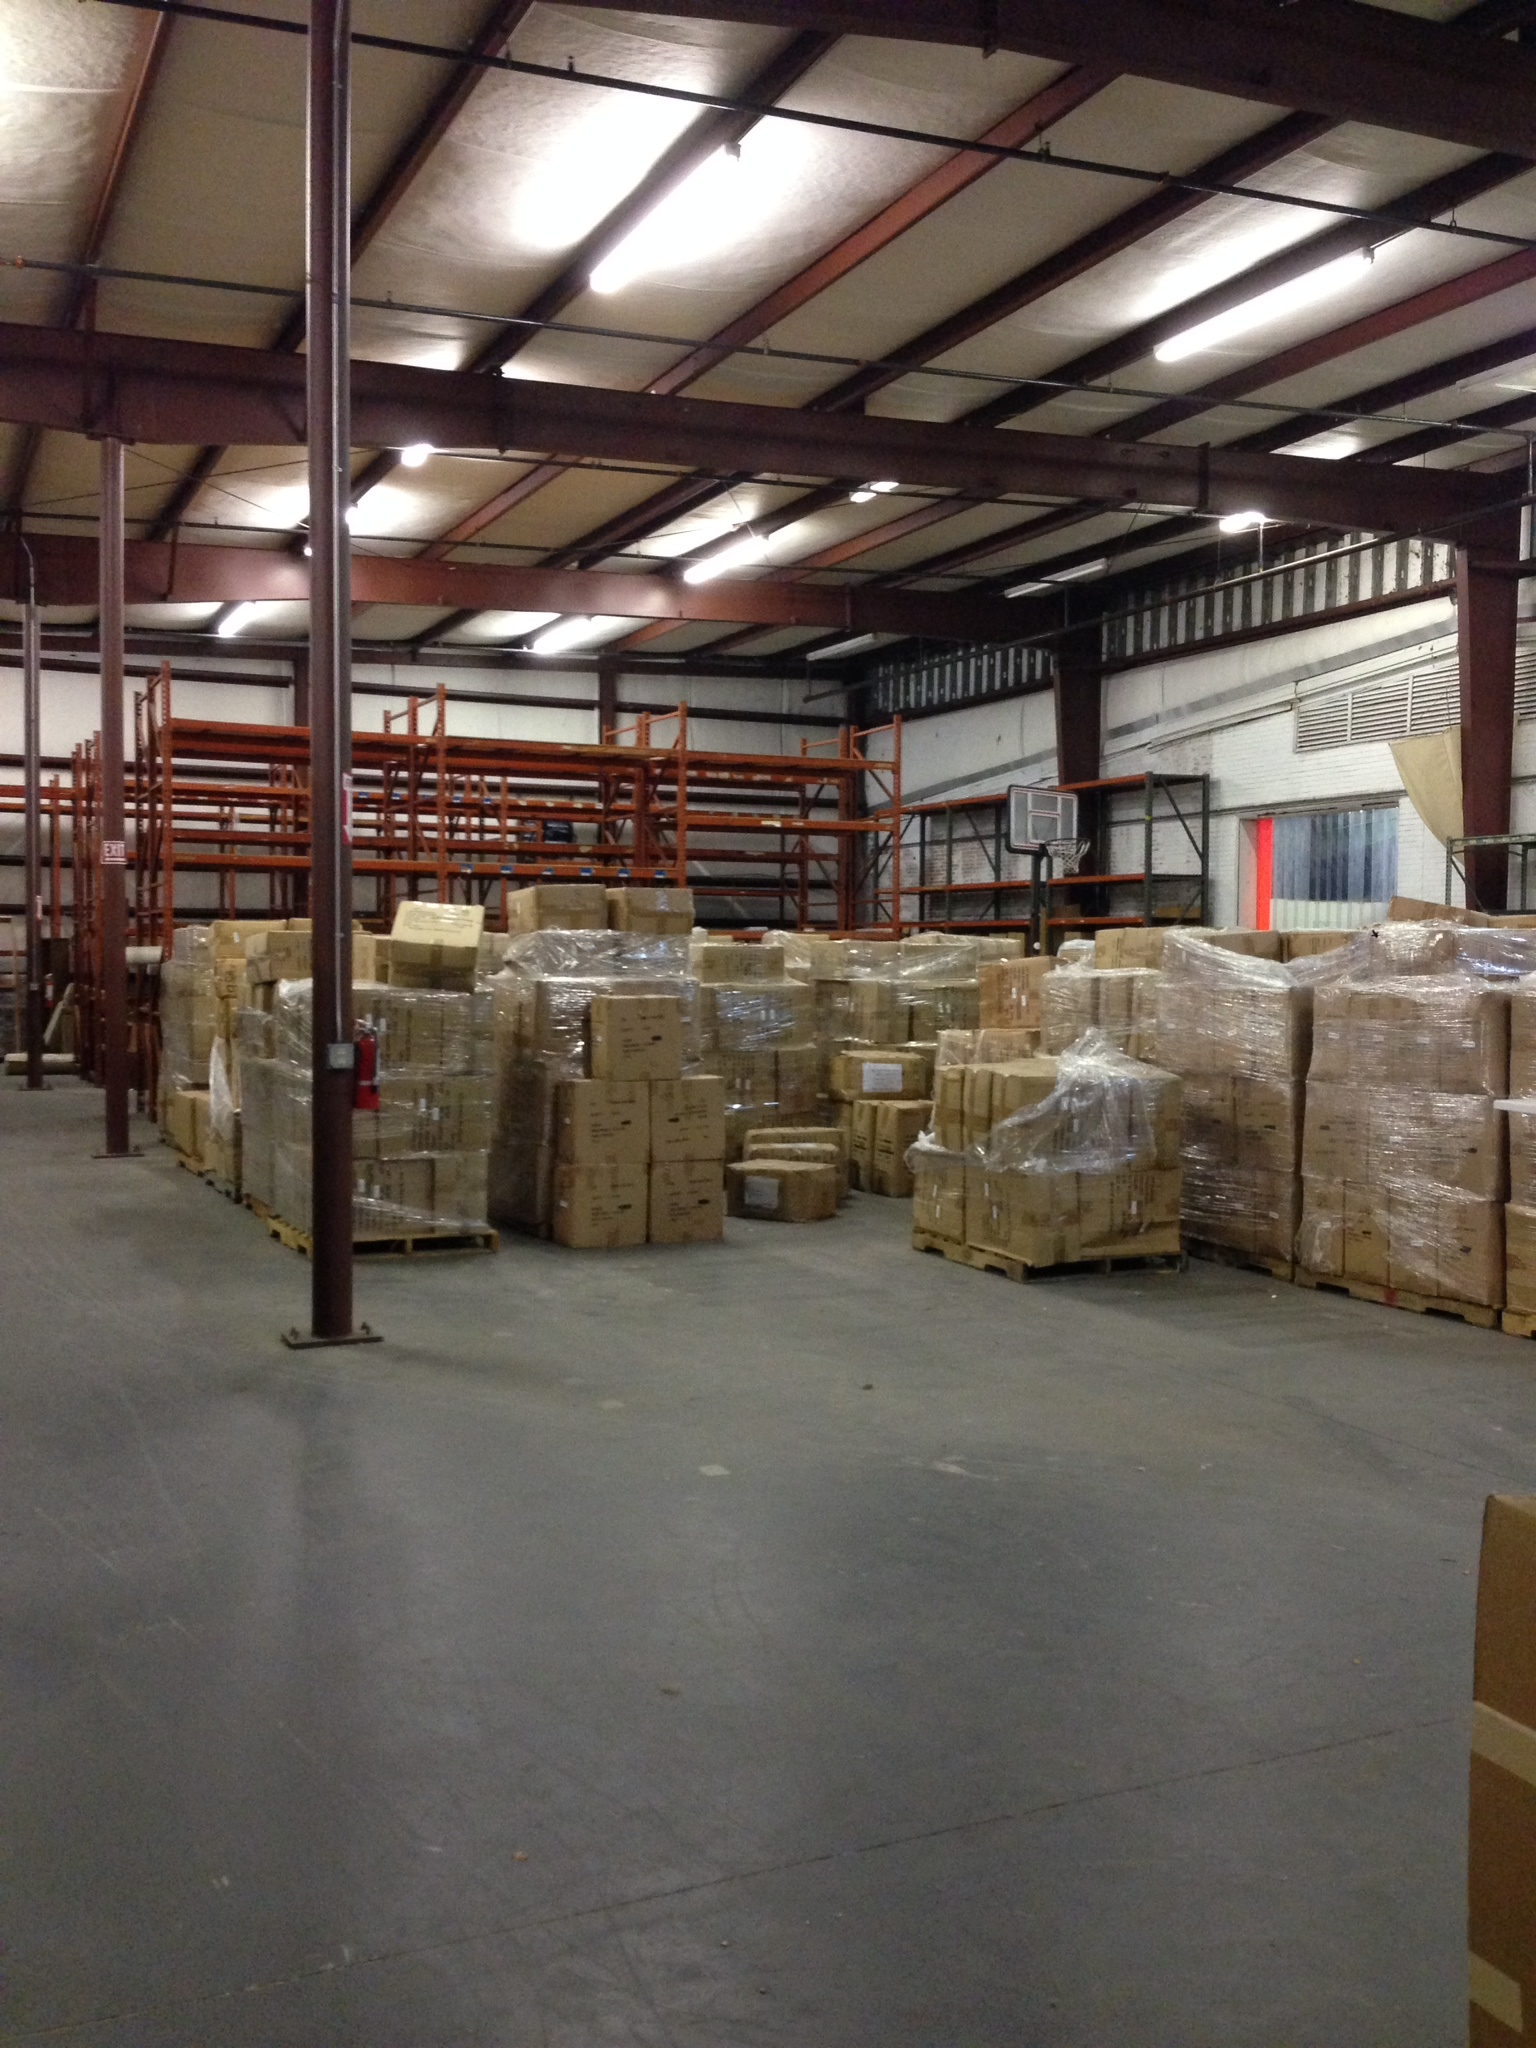 Warehouse space, August 2014